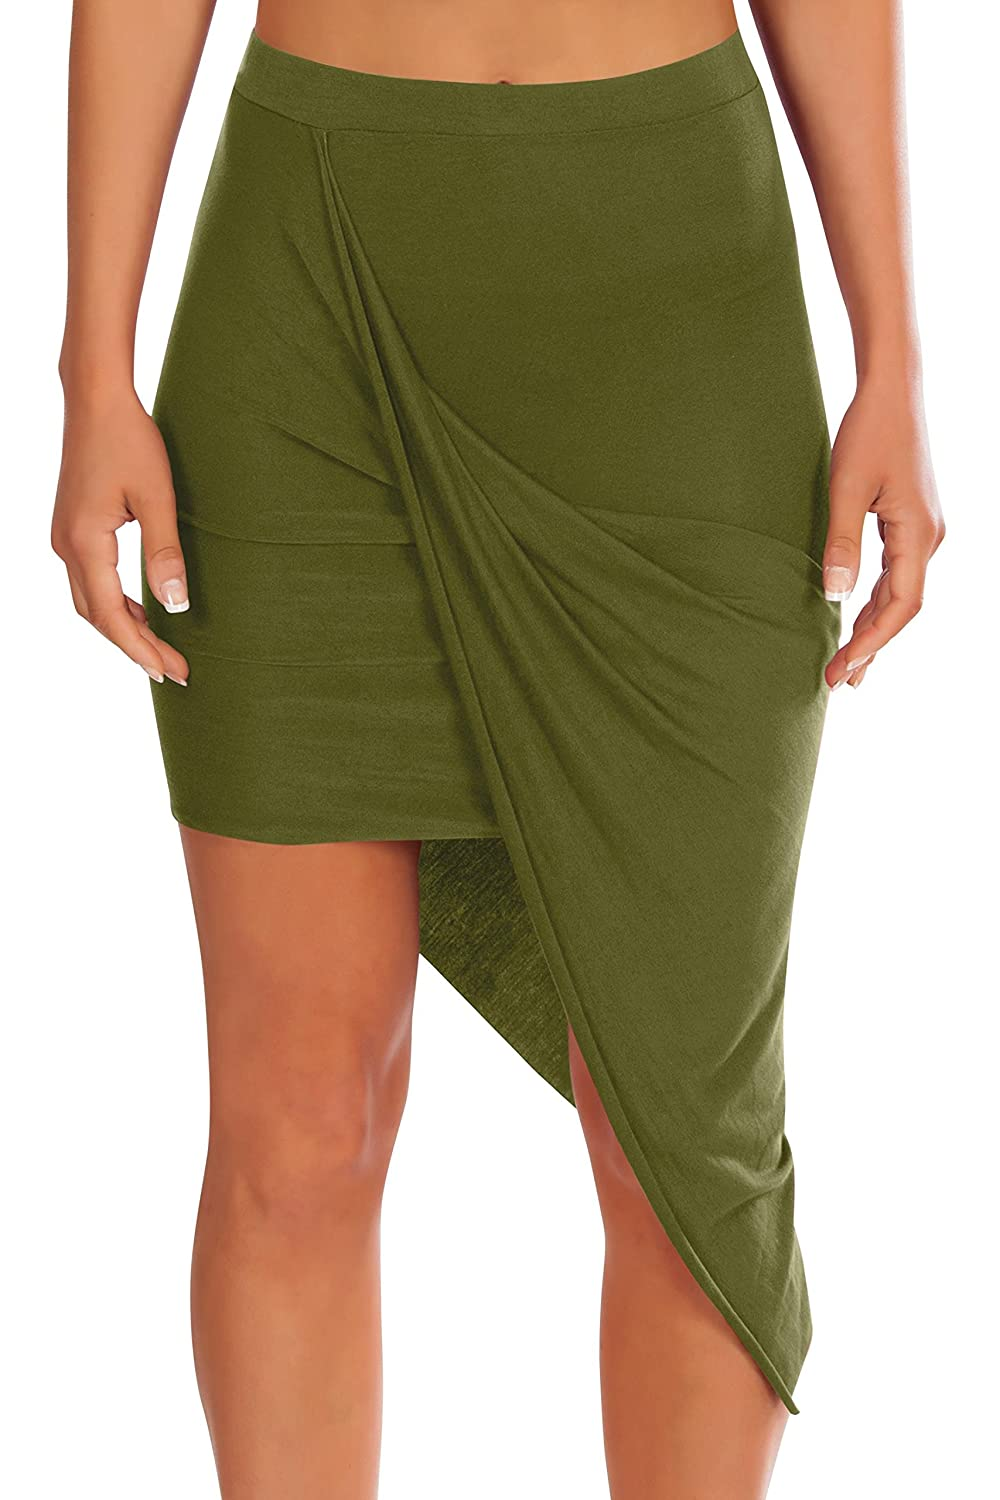 604b0a390 OCCASION - This tight fitting asymmetrical high low draped skirt for dressy  occasions. Wear to a party, club, wedding, date, or night out.